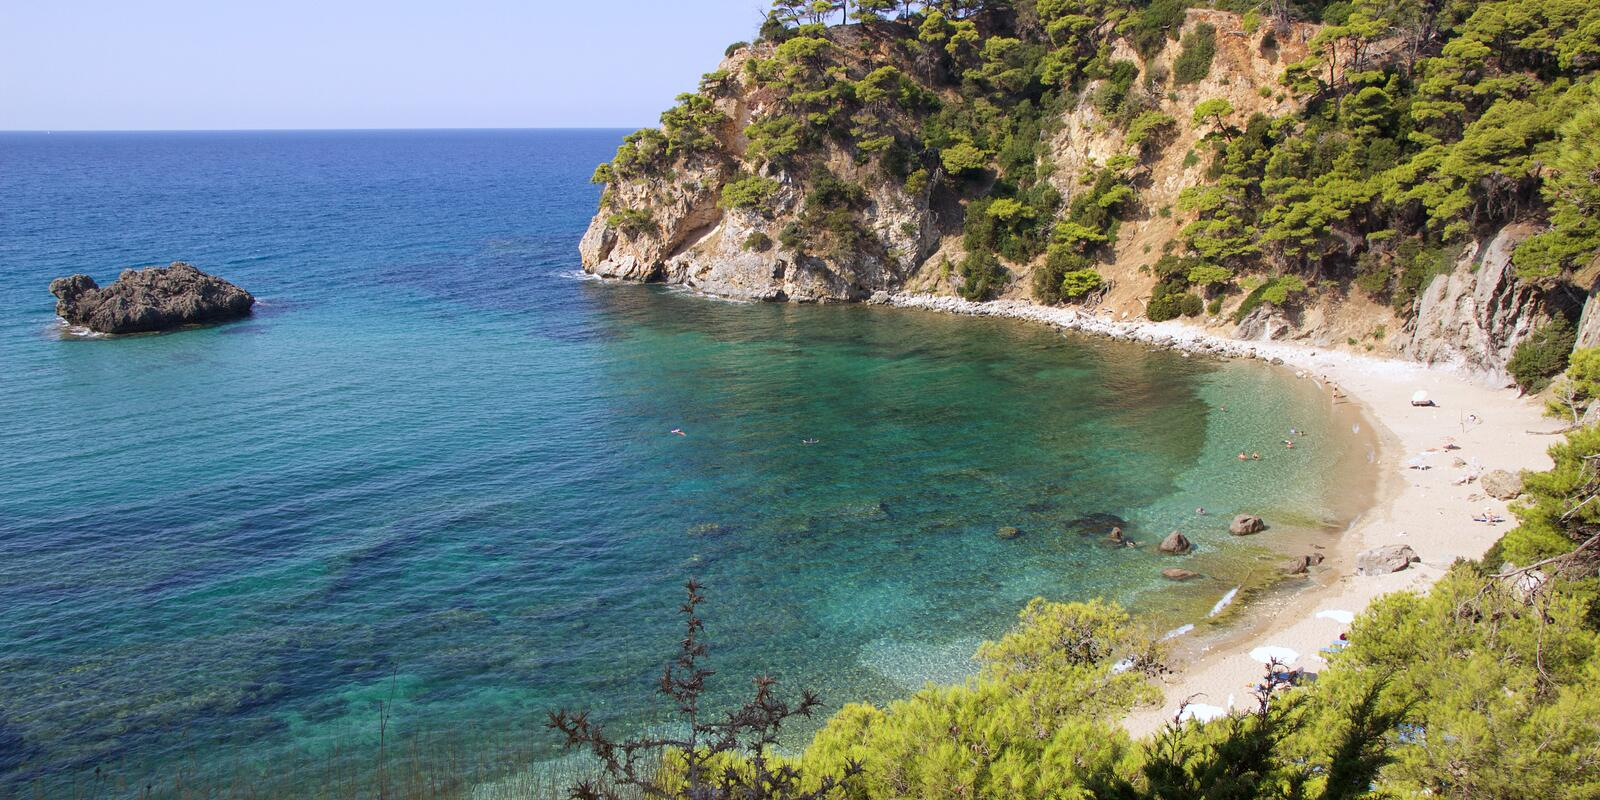 From Corfu to Preveza, turquoise sea and white beaches - Hostess on board